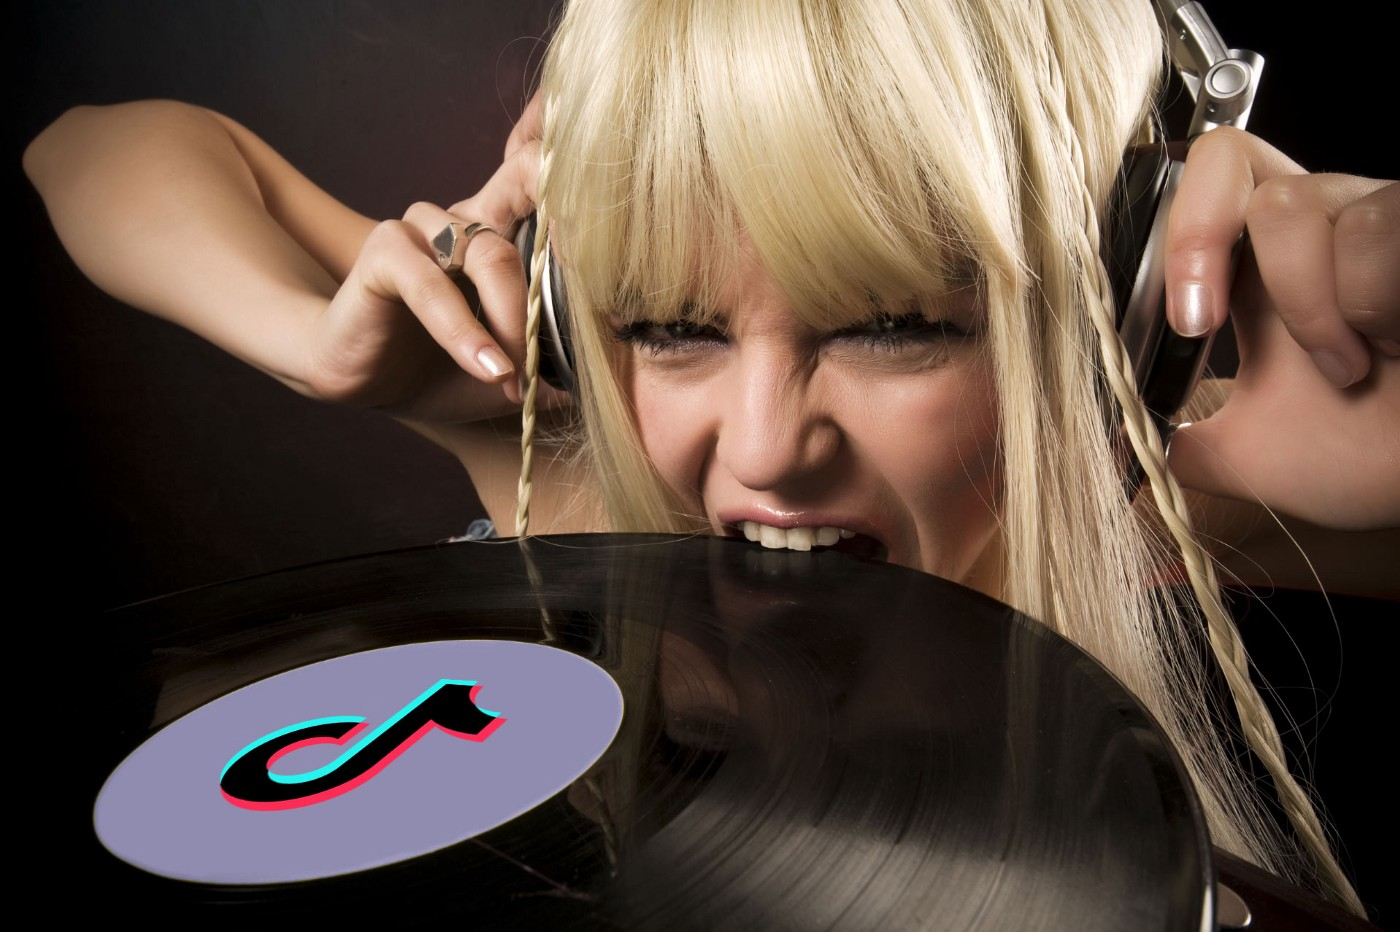 Lady listening to music while biting a vinyl record that has the TikTok logo on the top.